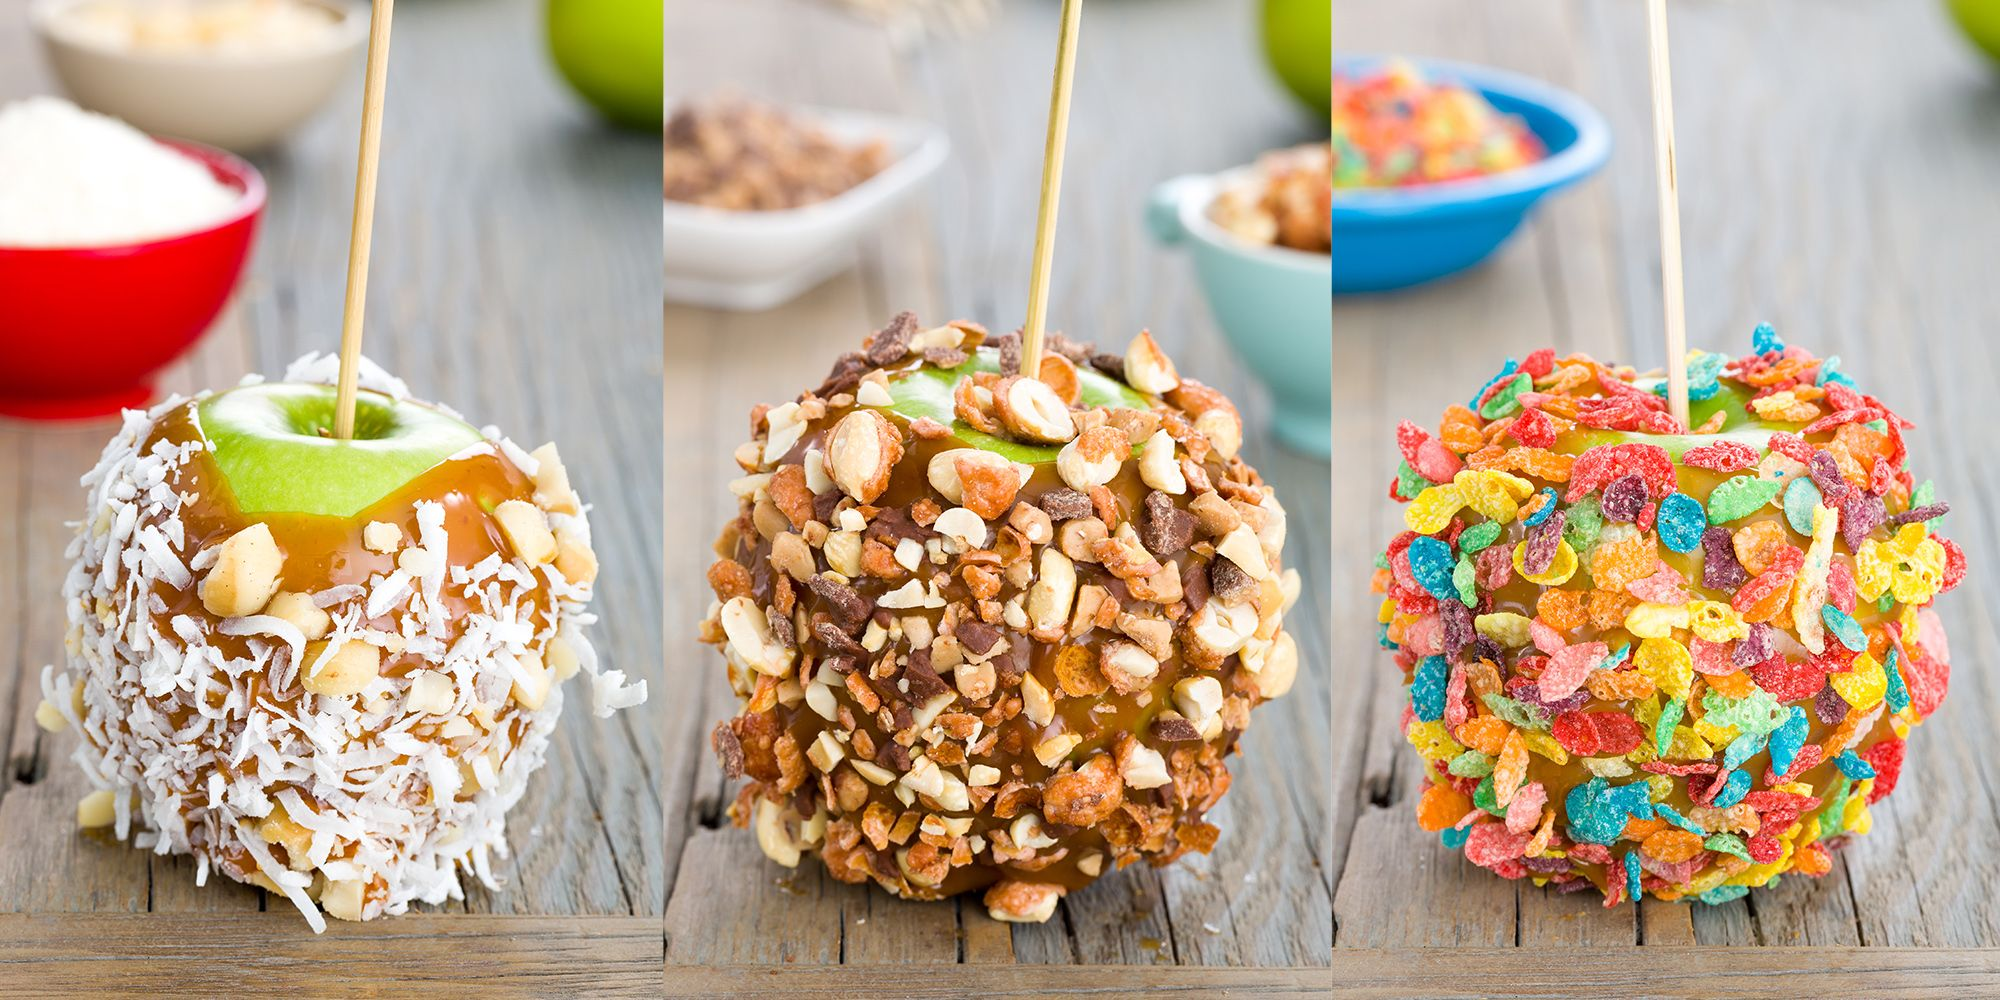 17 Best Caramel Apple Recipes And Toppings Candy Apple Ideas Delish Com